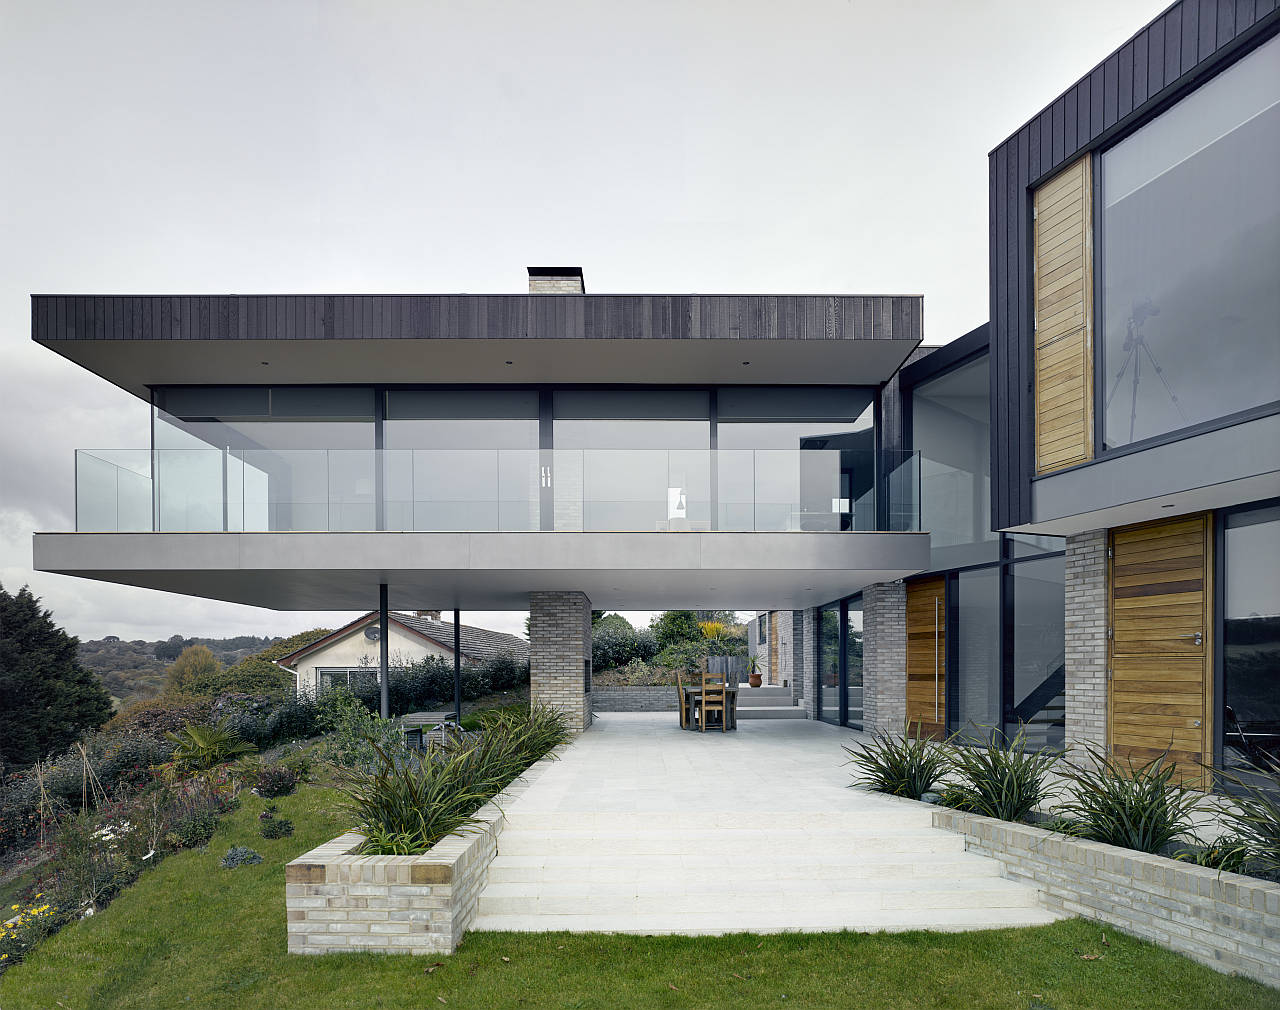 The Owers House by John Pardey Architects in Feock, Cornwall, England : Photo credit © James Morris